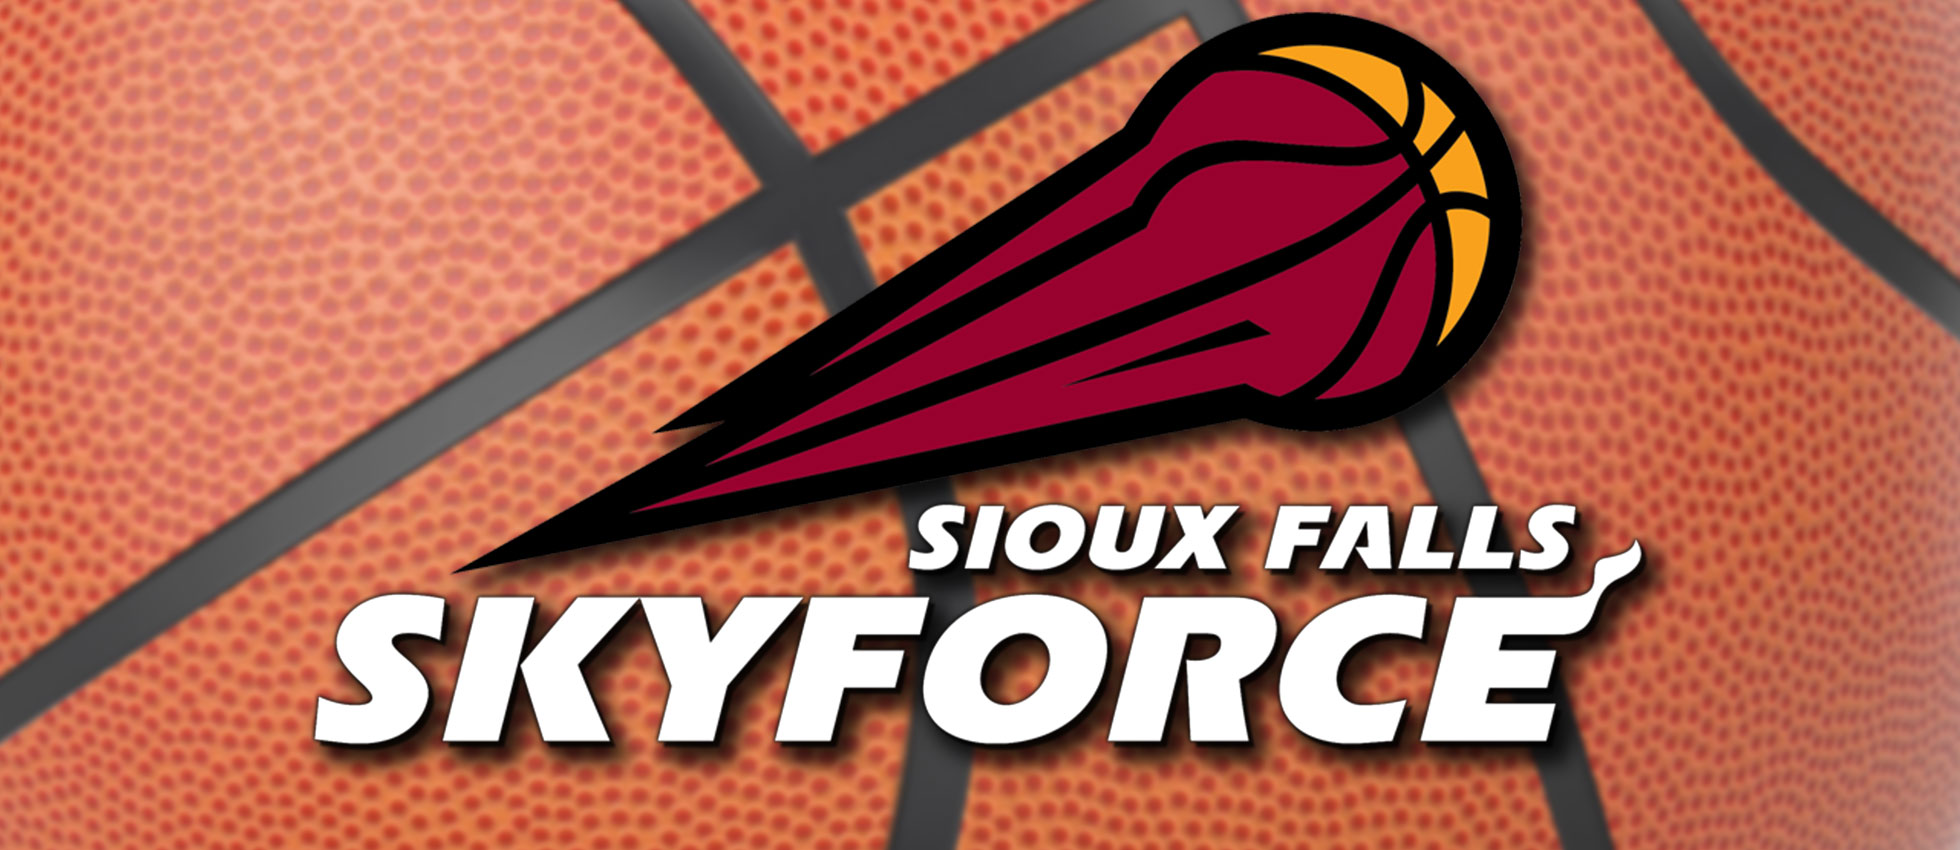 Sioux Falls Skyforce logo basketball